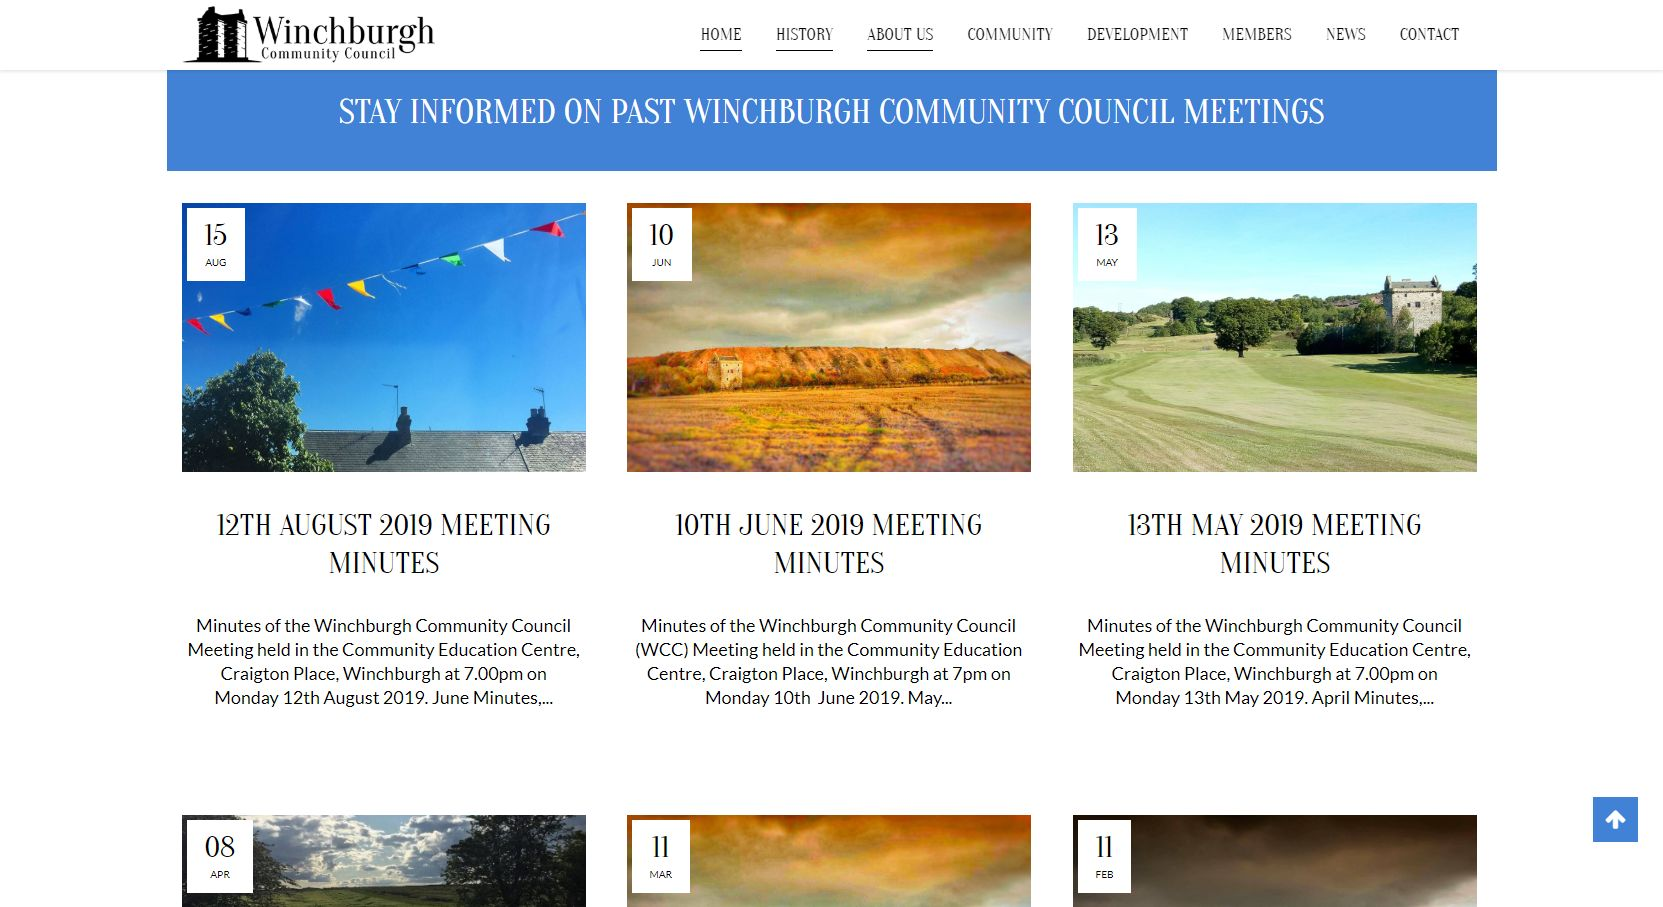 Winchburgh Community Council Blog Feed